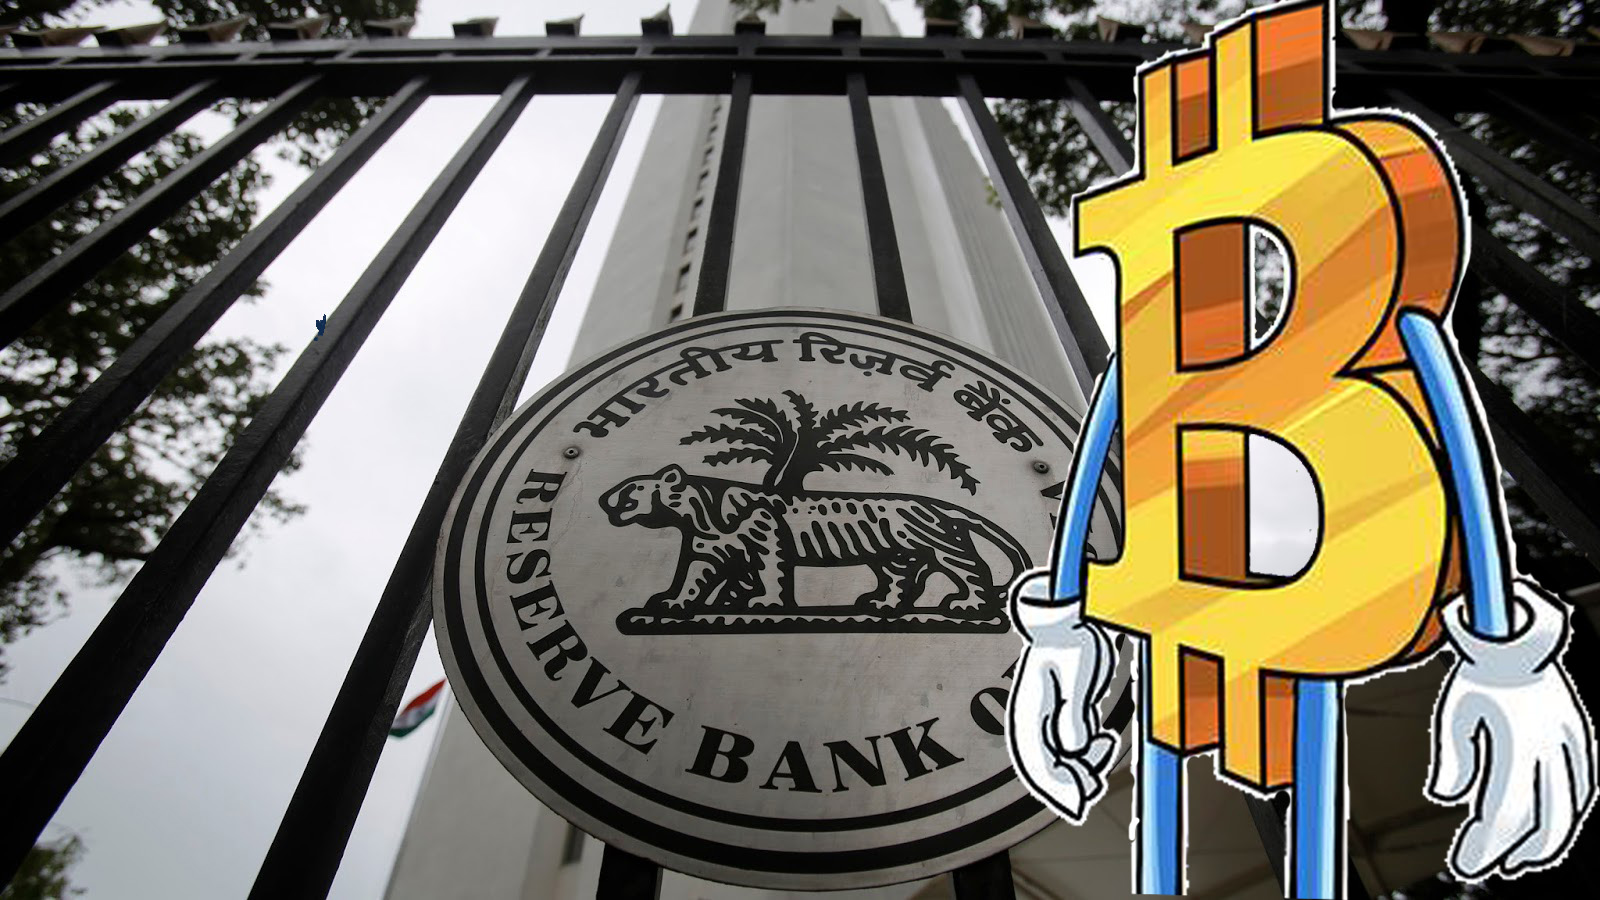 Reserve bank of india ban cryptocurrency